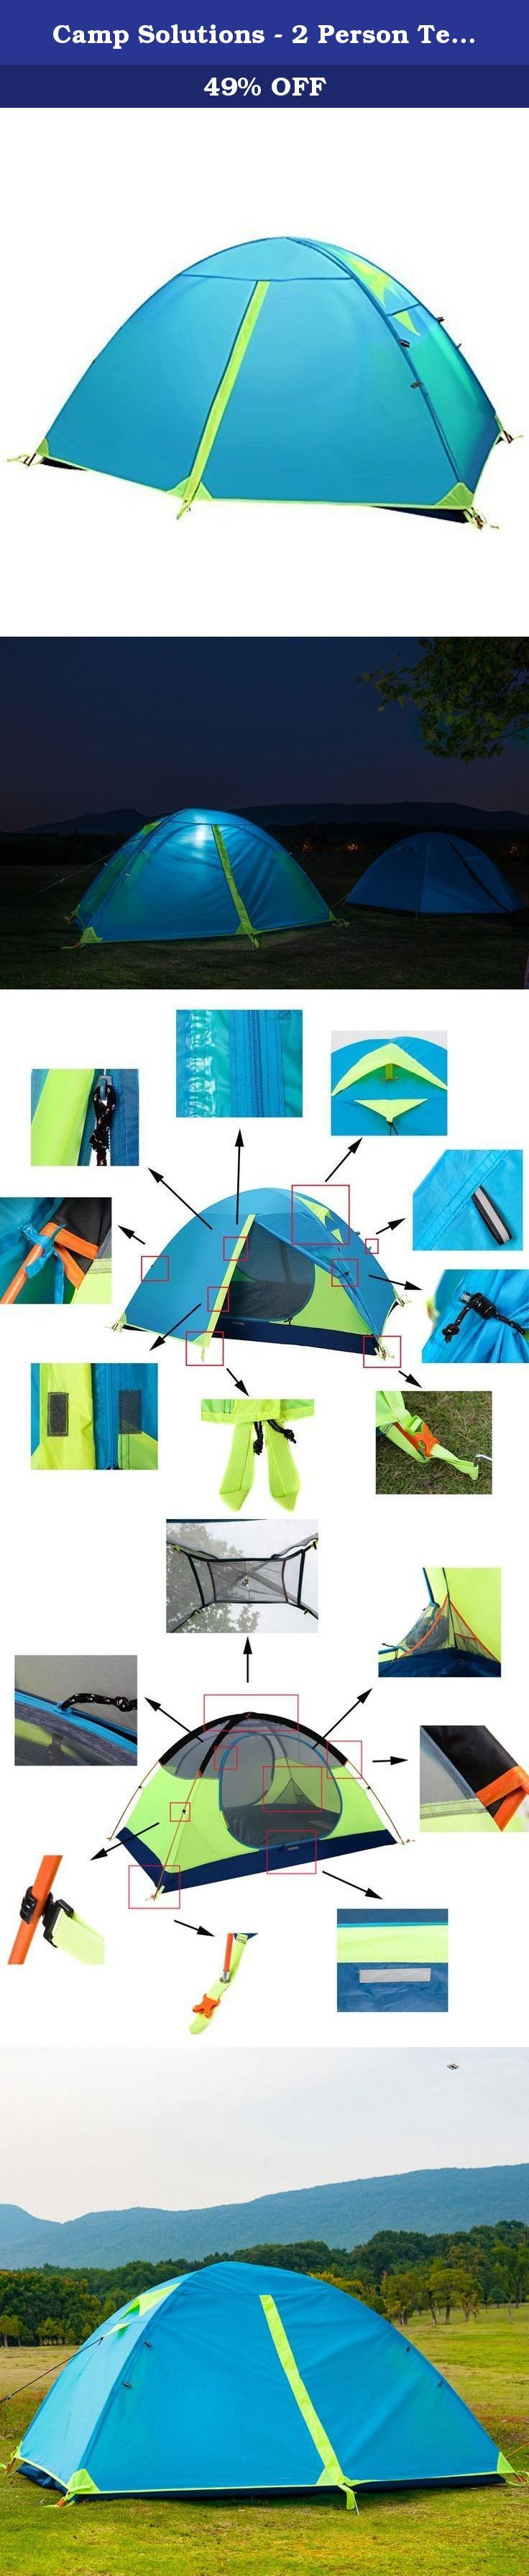 Camp Solutions - 2 Person Tent Double Layer 3 Season 2 Skylight Outdoor Camping Tent 5 LB (2.3 KG). Camp Solutions - 2 Person Tent The Camp Solutions 2 Person Tent is lightweight and protective, only has 5 lb. You can go backpacking from Grand Canyon through Yellowstone National Park with no worries. Our tent uses high density mesh to bring the summer breezes in, and keep the fly out. It is suitable for hiking, climbing, camping, self-driving tour, fishing and other outdoor activities....